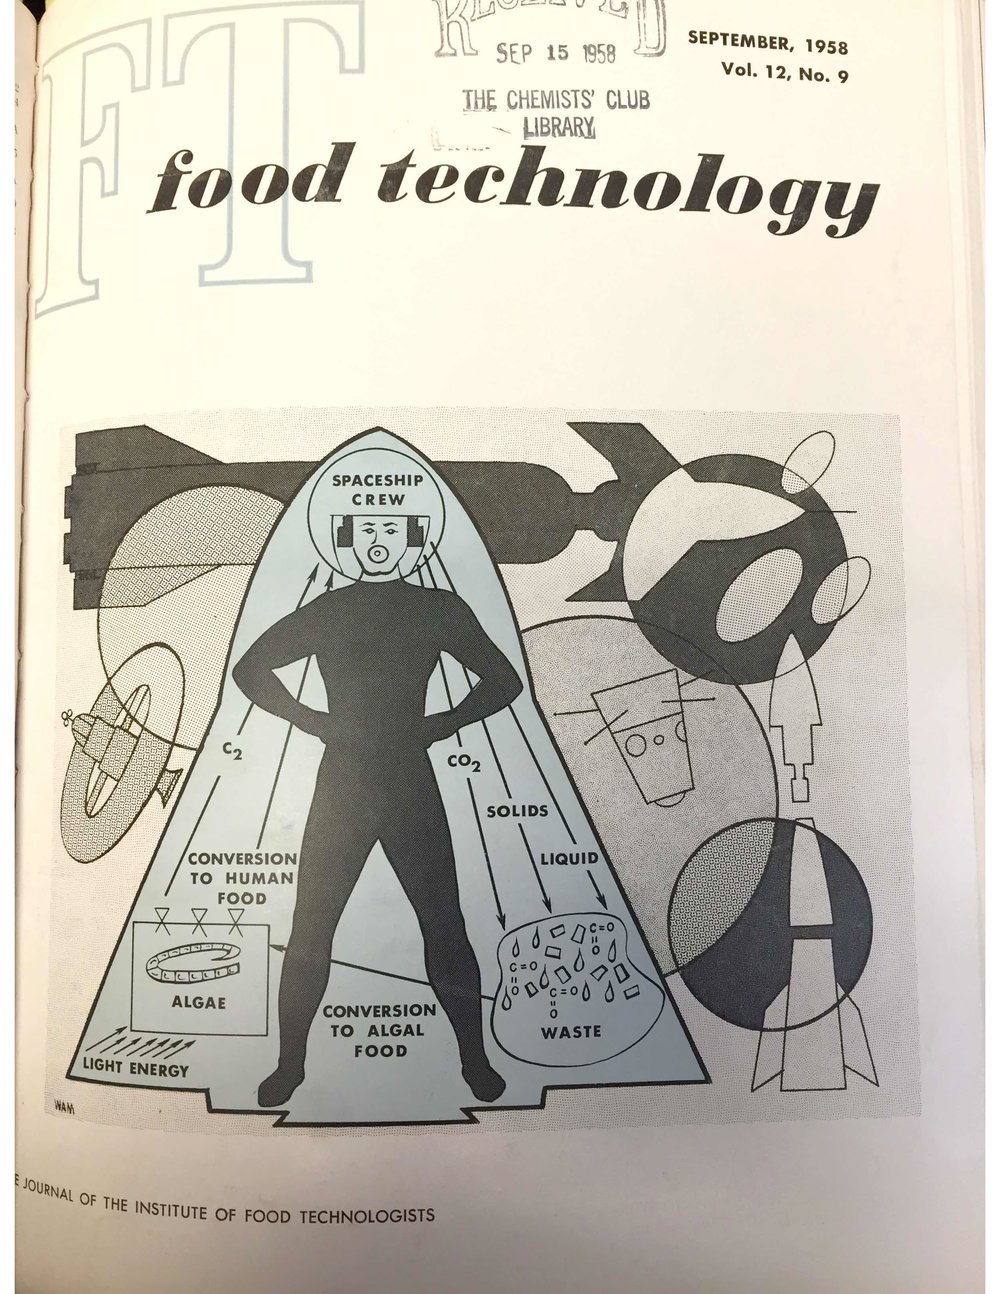 The man-algae poop-food cycle, as depicted on the cover of  Food Technology , September 1958 (also known as international geophysical year).